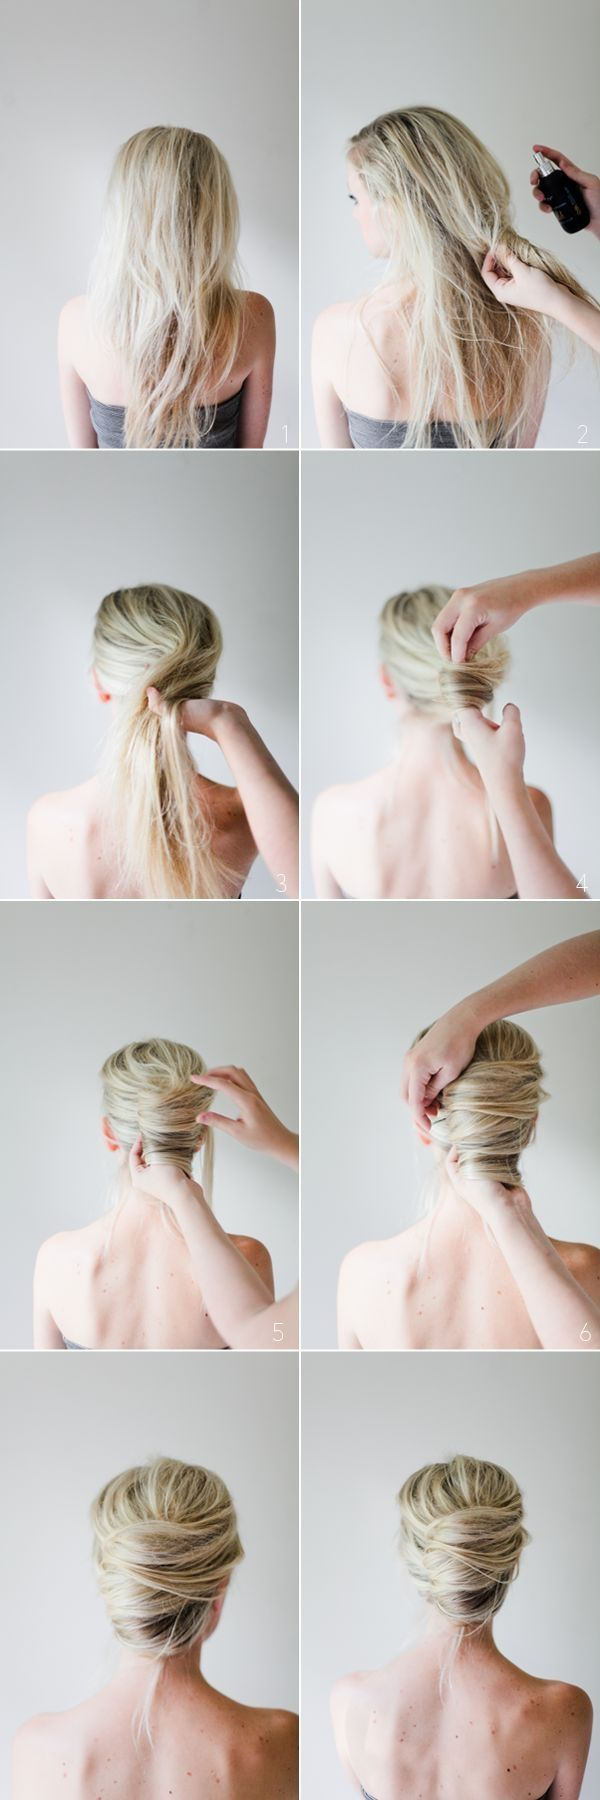 Messy French Twist Tutorial by jthomason